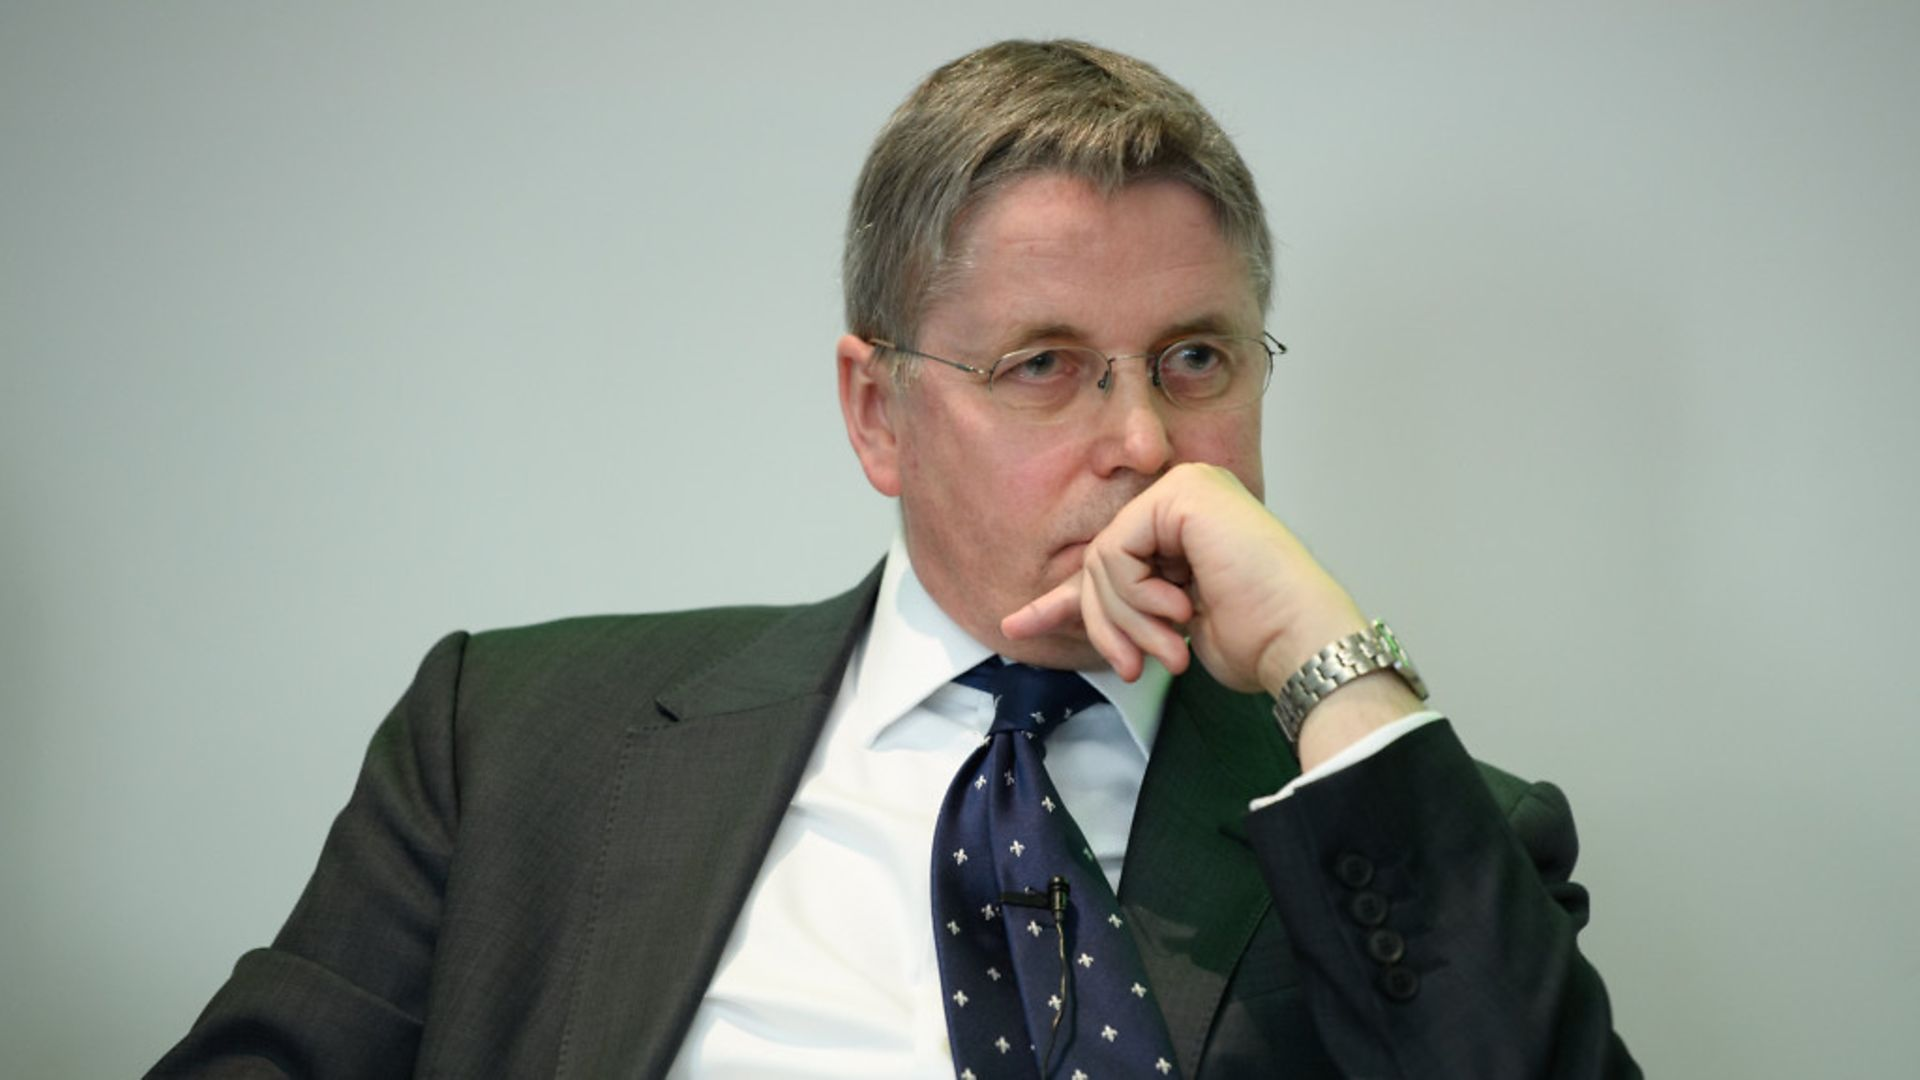 Sir Jeremy Heywood. Photo: Leon Neal/Getty Images - Credit: Getty Images